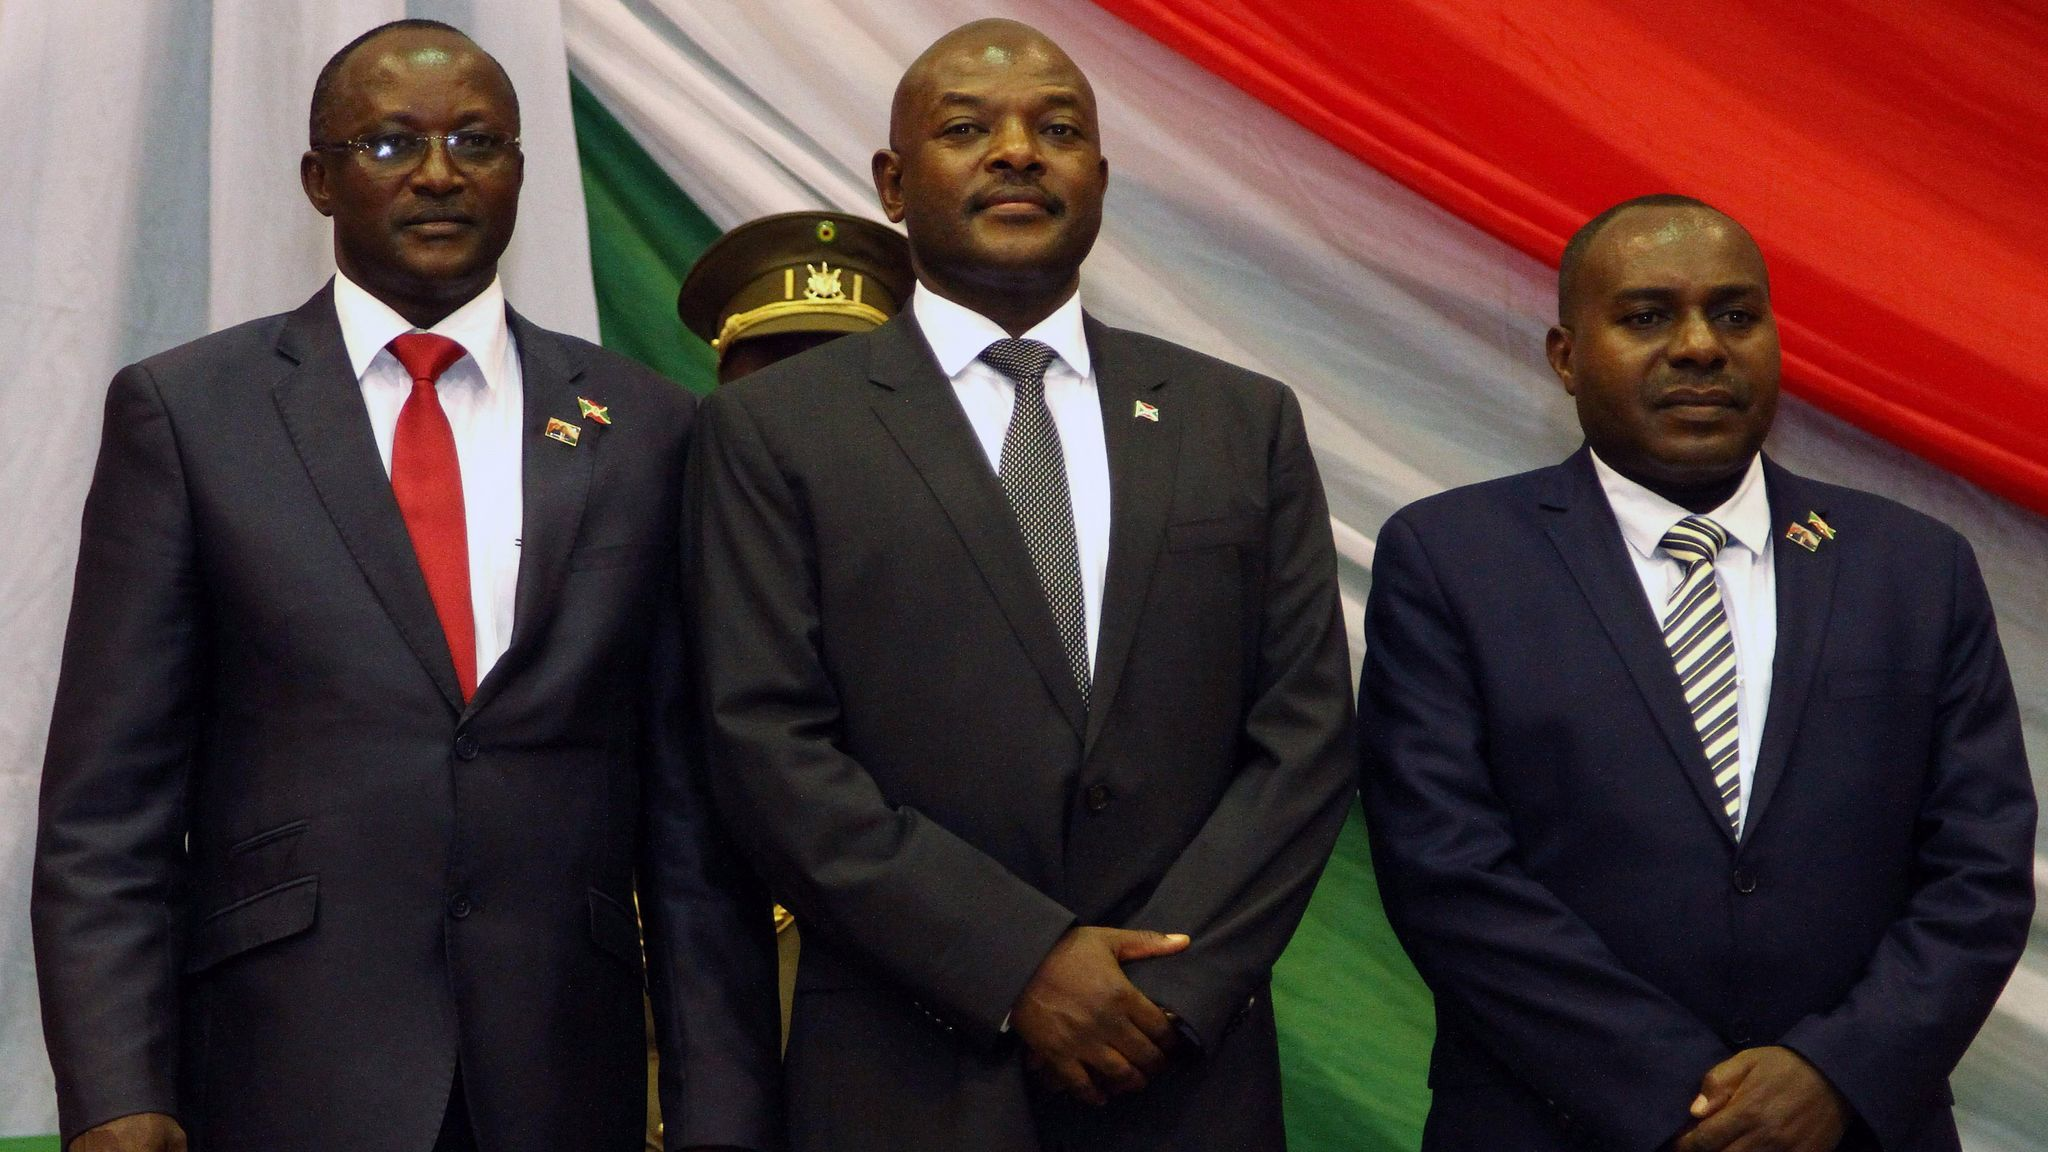 Burundi's President Pierre Nkurunziza, center, with his new first and second vice presidents Gaston Sindimwo and Joseph Mutore, after being sworn in for a controversial third term. In a speech afterward he swore his opponents would be crushed by God.